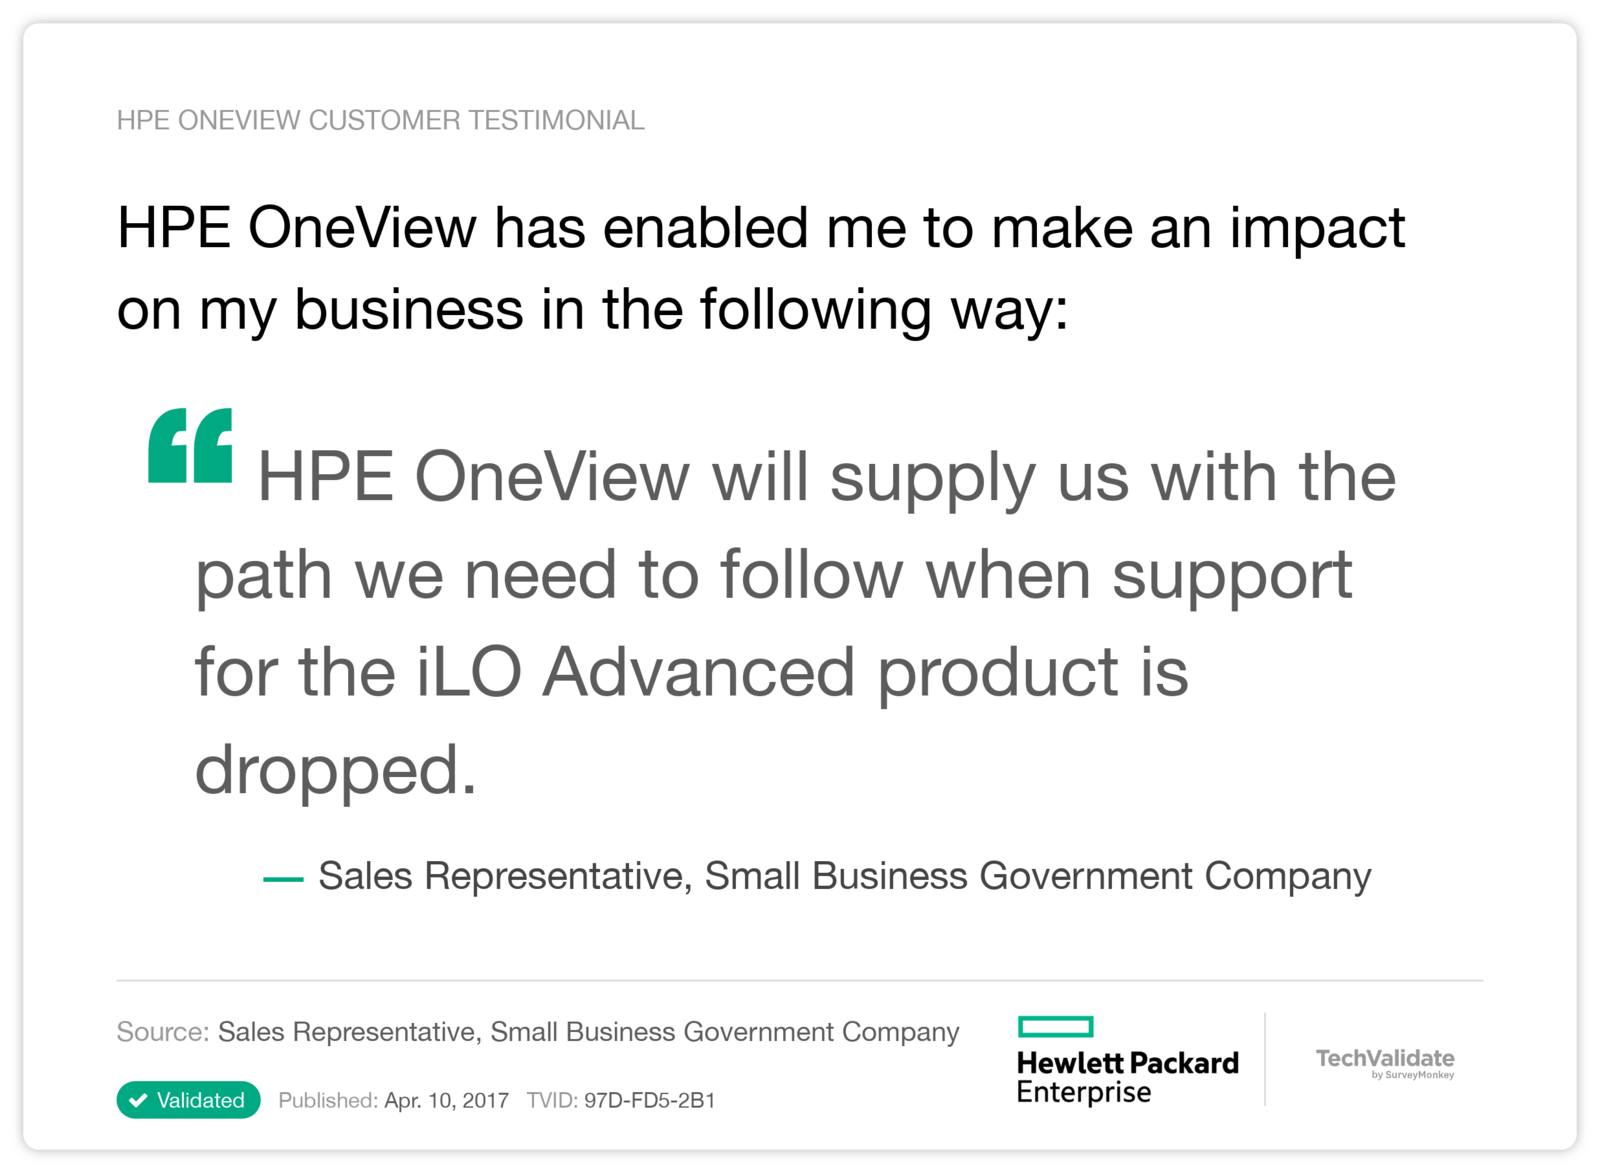 HPE OneView has enabled me to make an impact on my business in the following way: